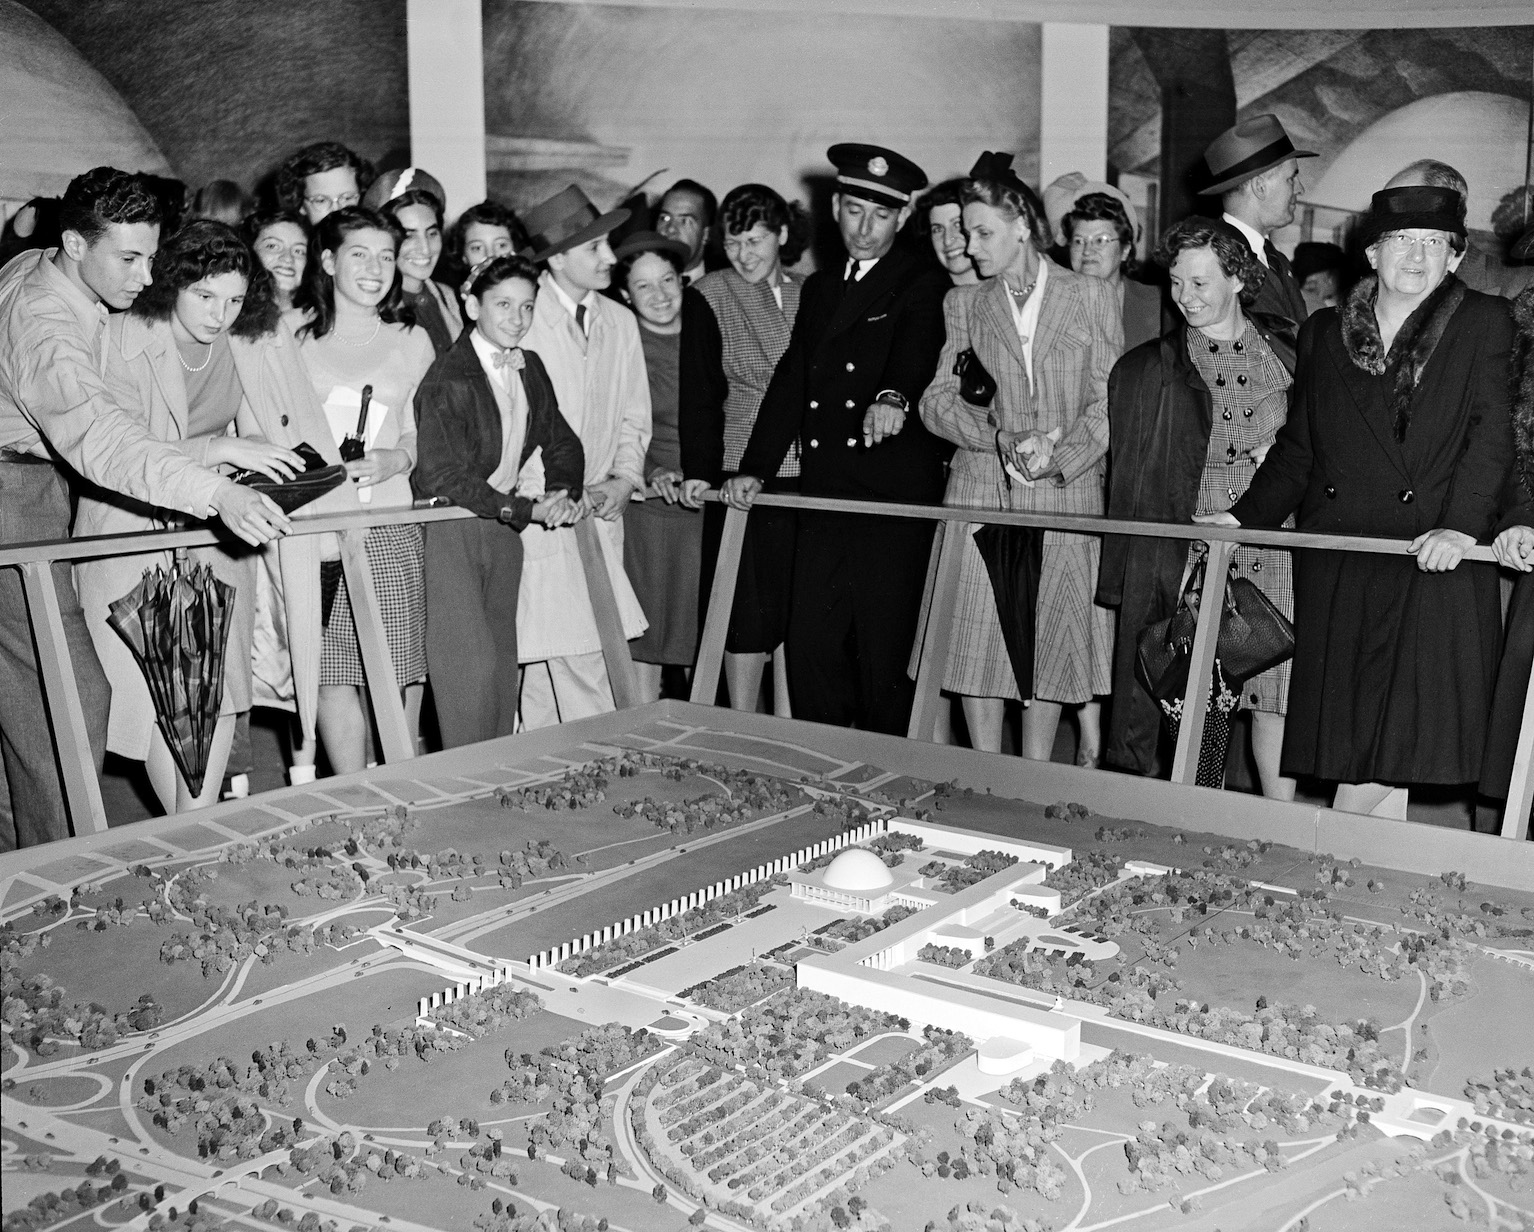 MODEL OF UN FLUSHING COMPLEX, 1946 - UN ARCHIVES